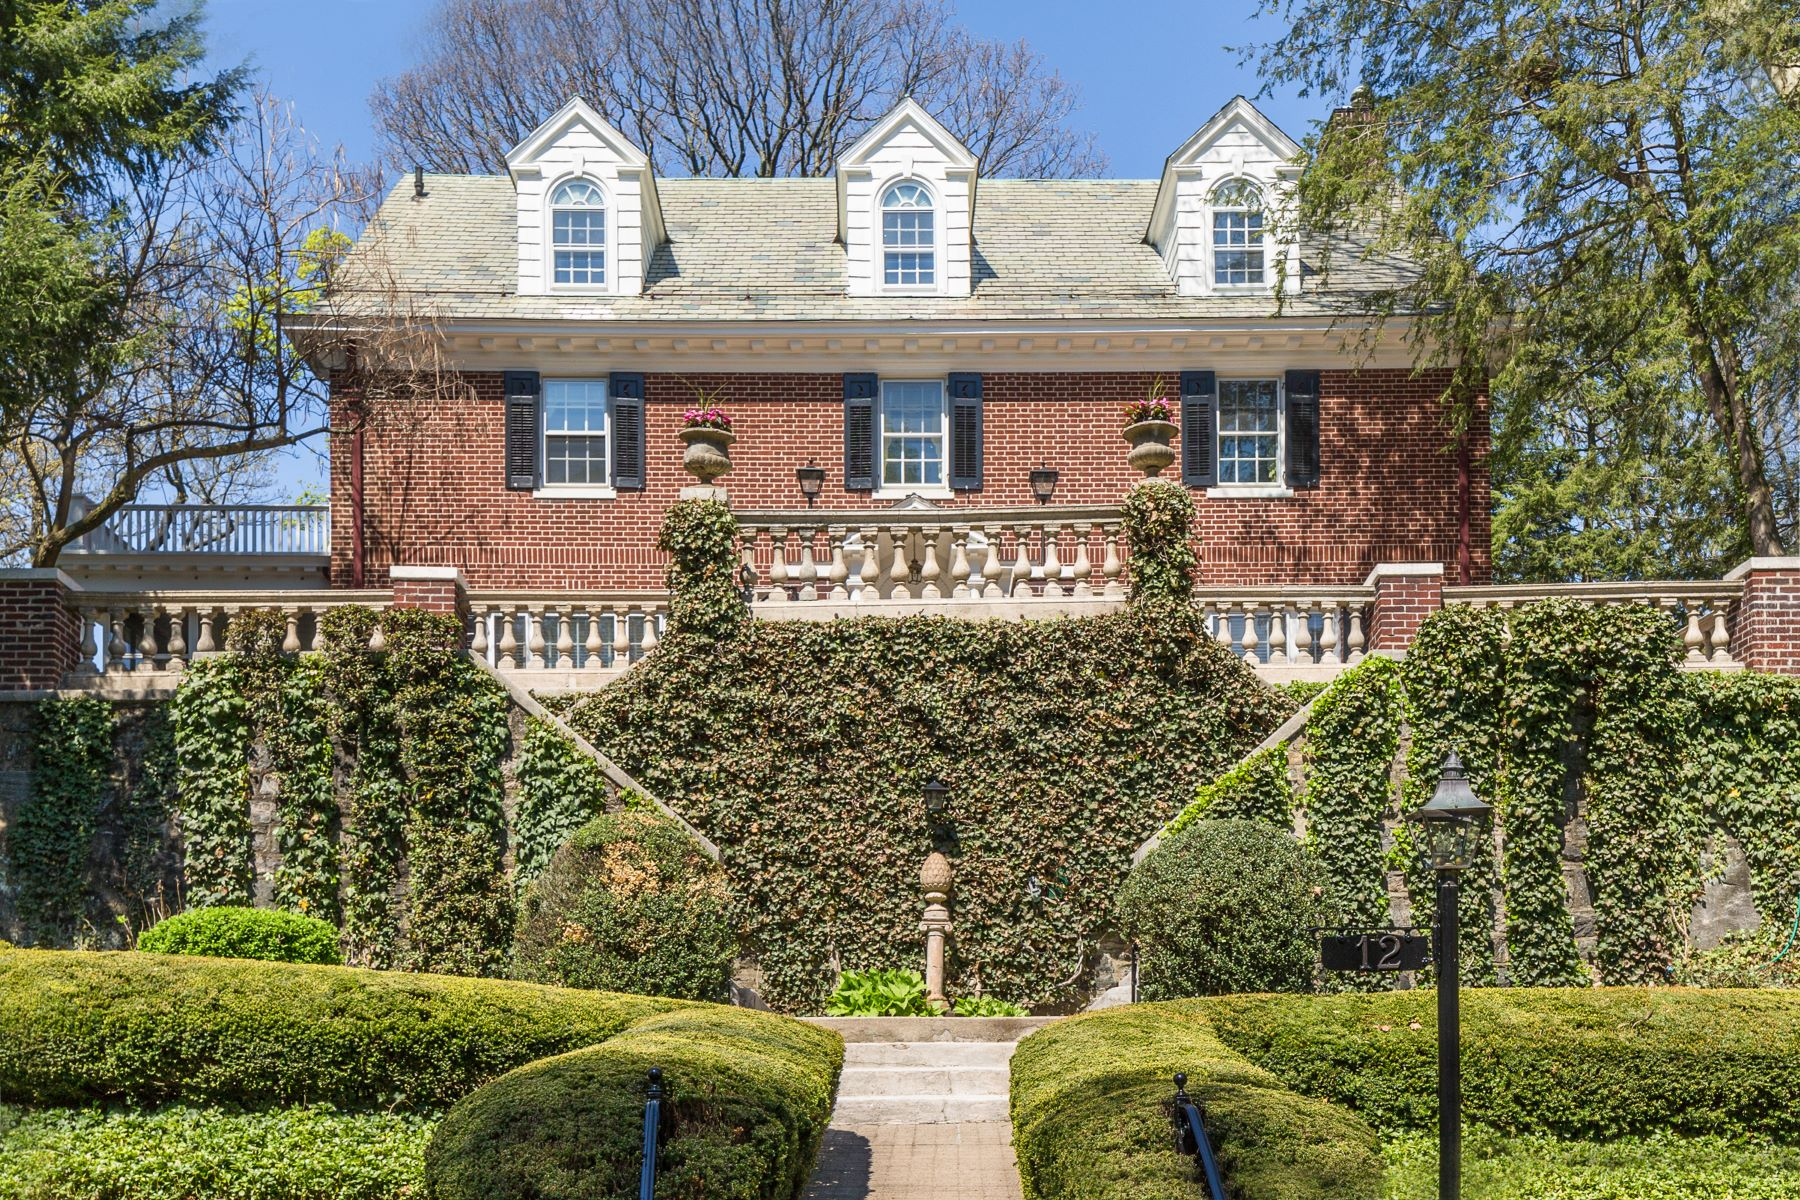 Single Family Homes for Sale at Welcome To 12 Plateau Circle East 12 Plateau Circle Bronxville, New York 10708 United States